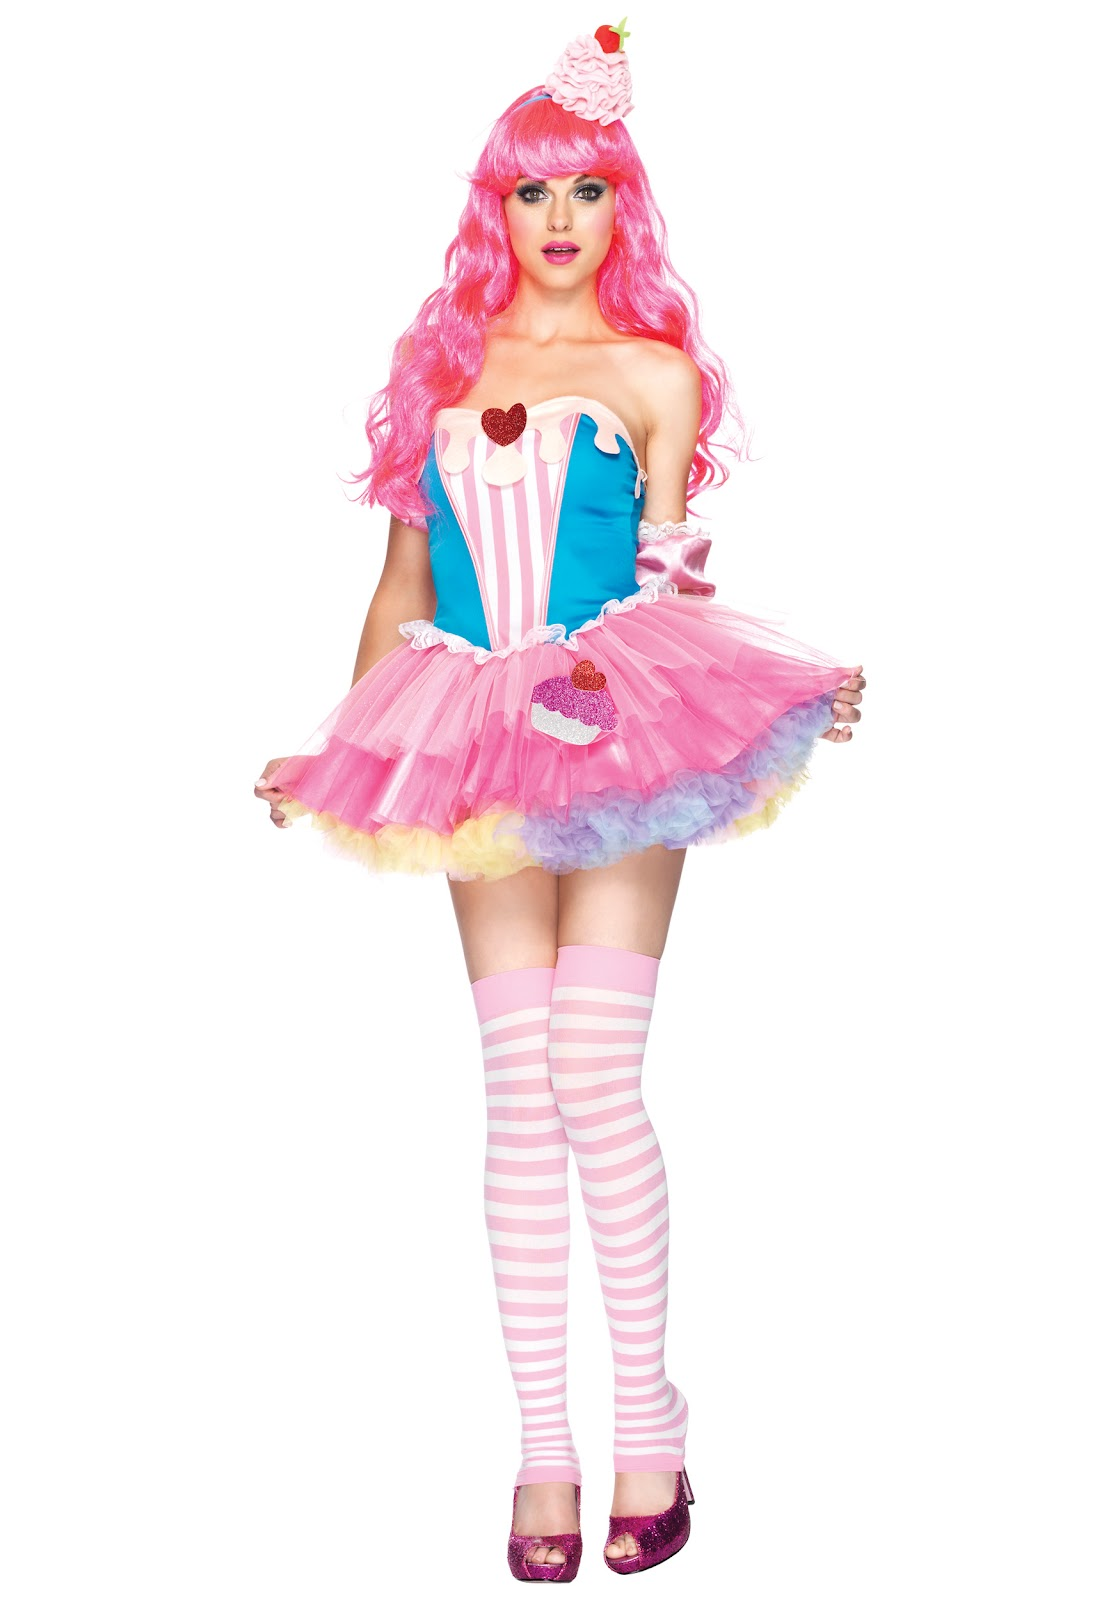 Halloween Costumes for Kids and Adults - Walmartcom